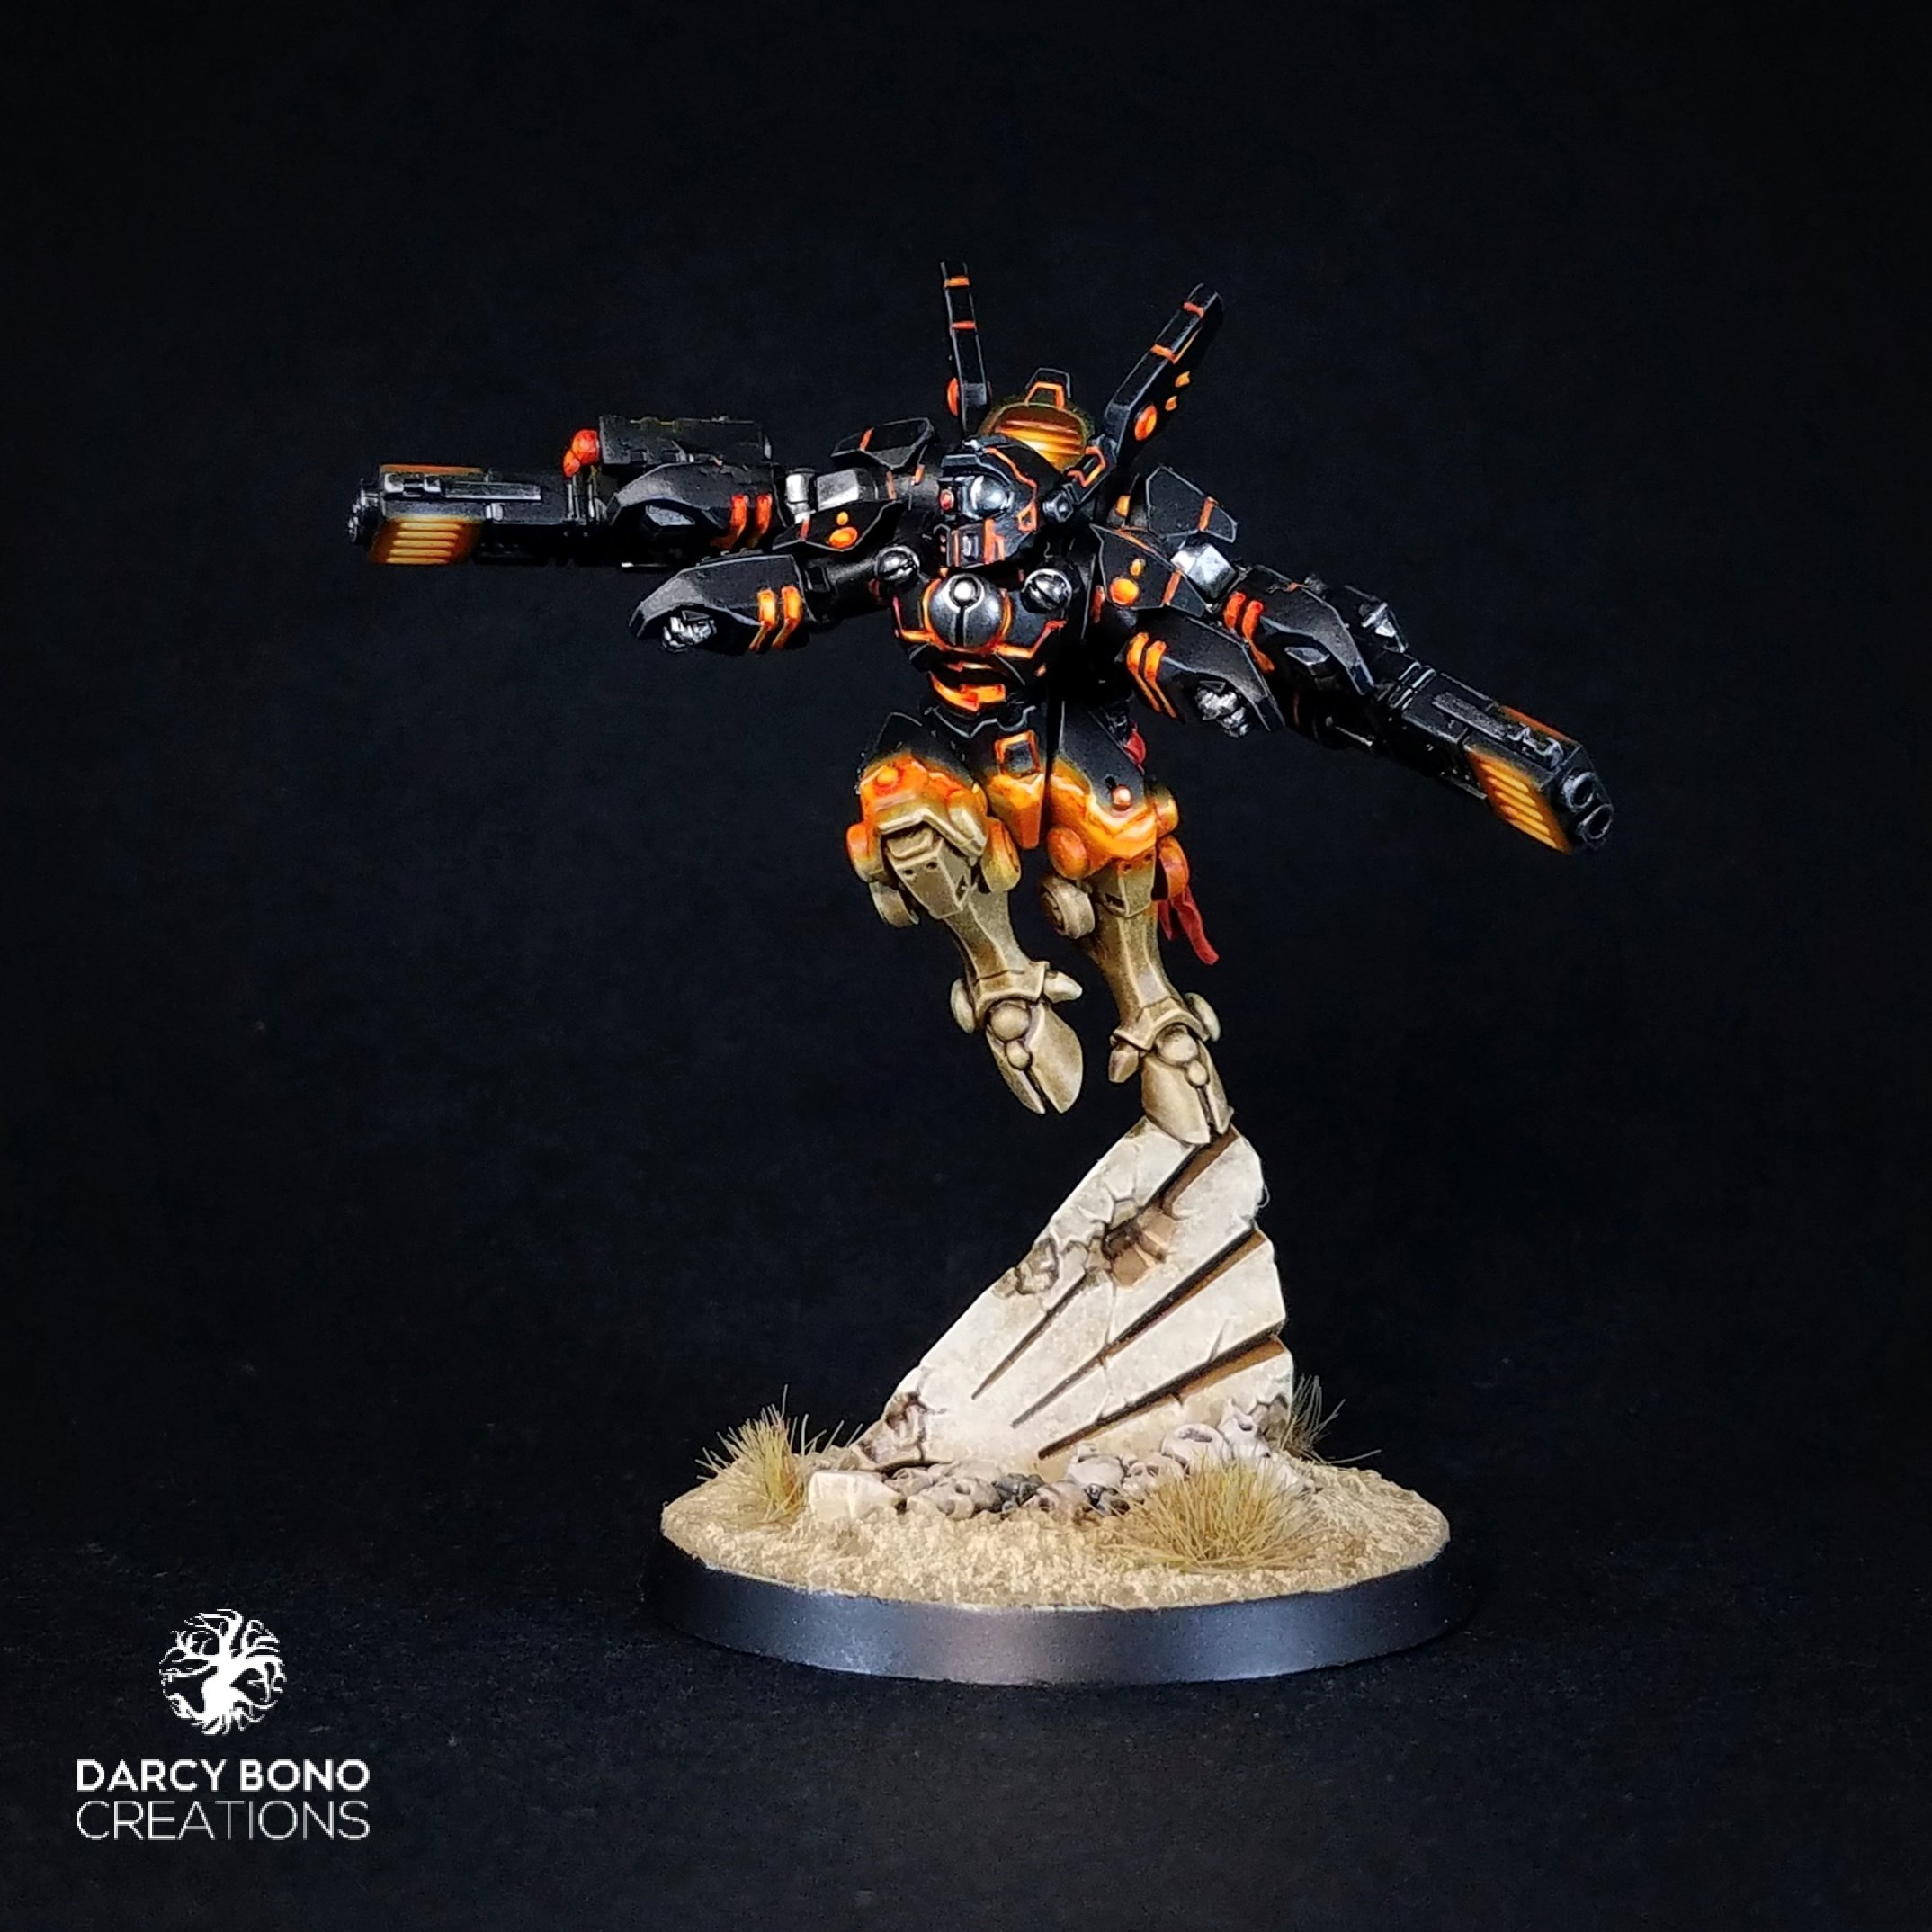 a Games Workshop T'au Commander Shadowsun miniature, painted in a striking black and orange colour scheme with the bottom half camouflaging itself against the environment.